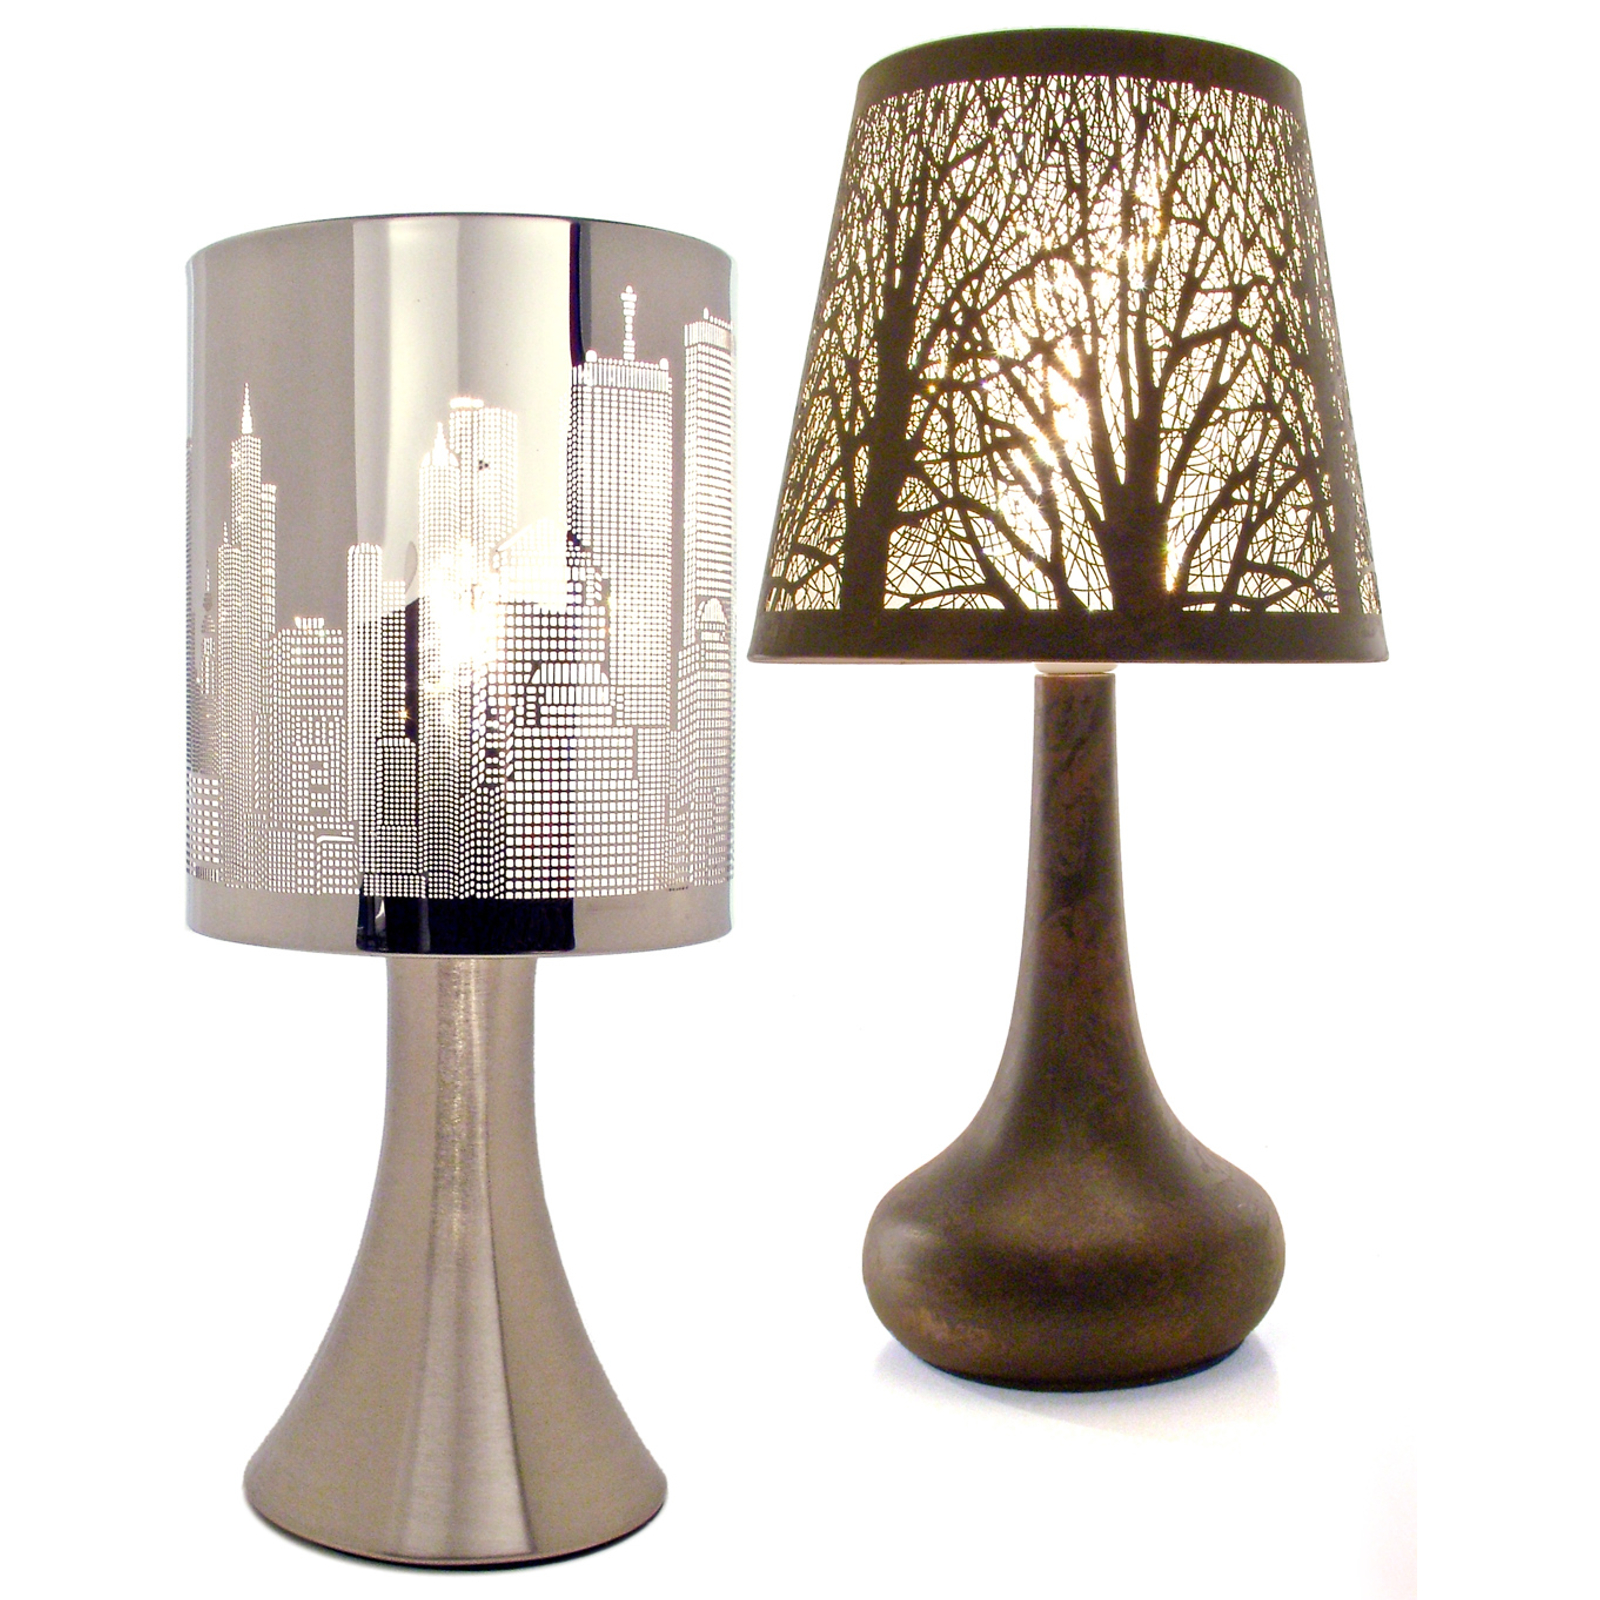 Chrome touch lamp dimmer bedside table light new york city skyline ebay - Bedside lamps with dimmer ...